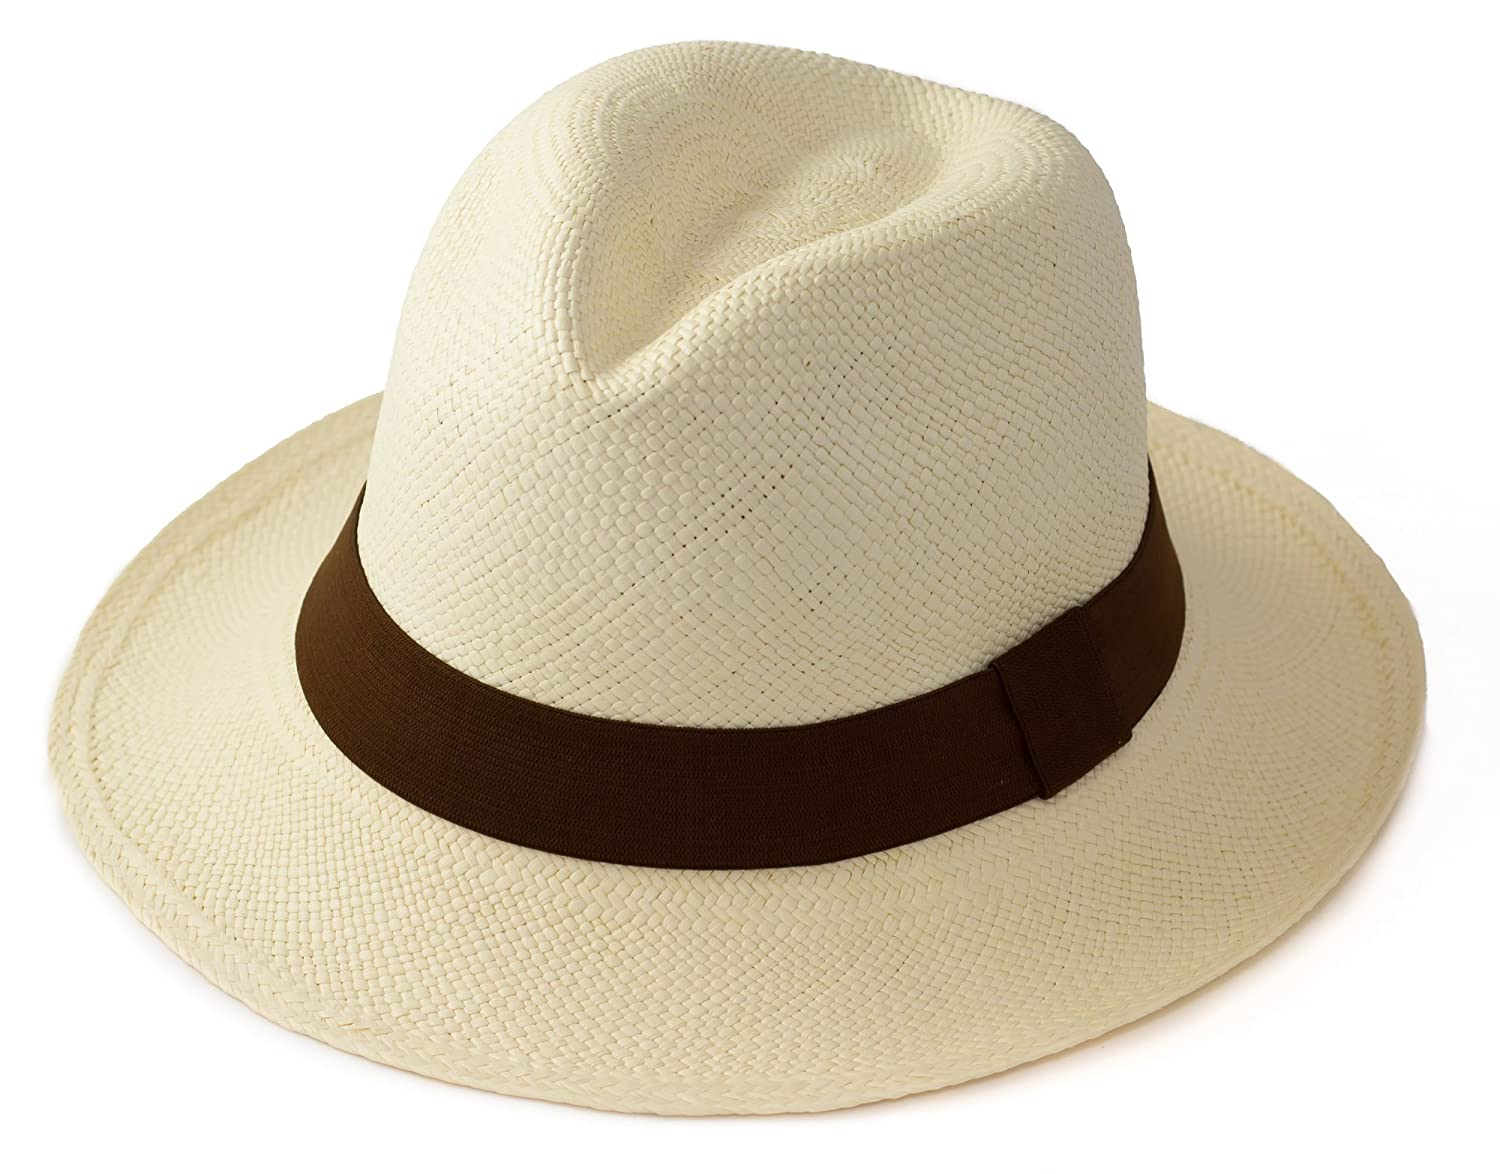 1c17e671 Traditional Panama hat foldable with BROWN band, size 59 - Fair trade and  hand woven in Ecuador: Amazon.co.uk: Clothing